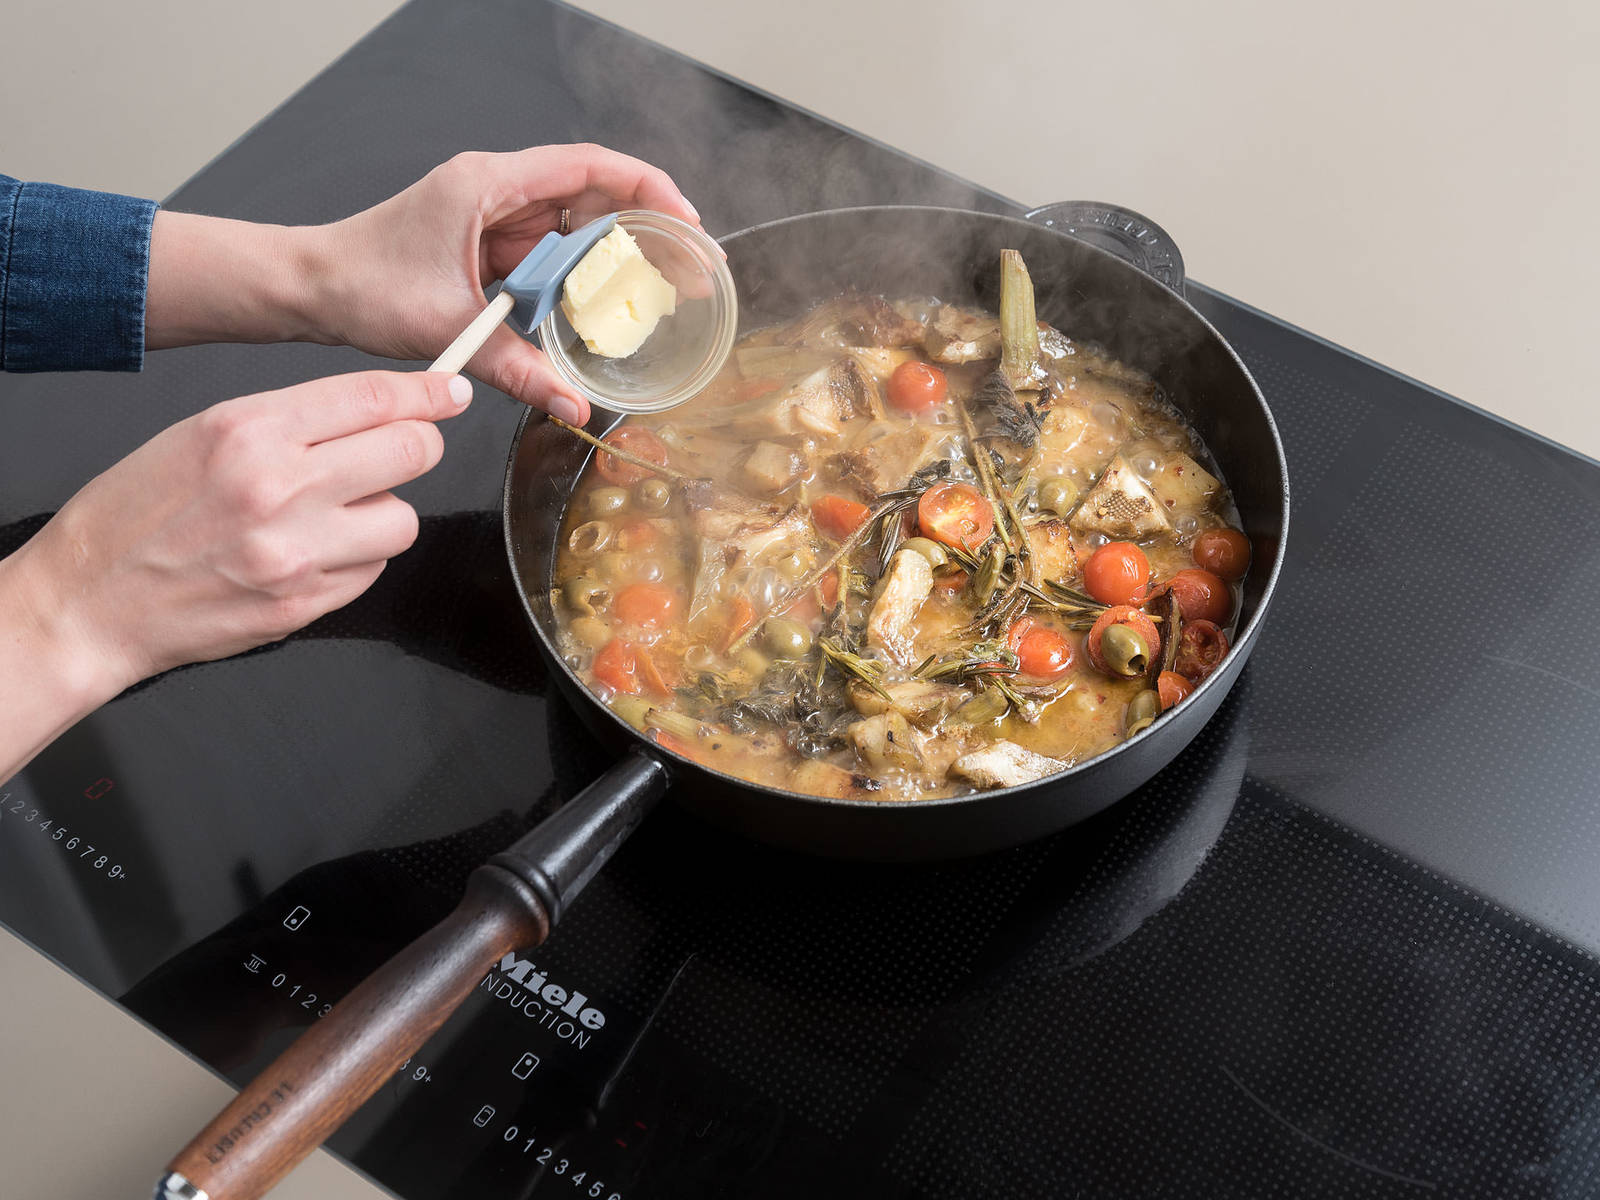 Transfer chicken to a plate, then return pan to stove and simmer sauce over medium-high heat until thickened slightly, approx. 3 min. Stir in butter. Return chicken to pan and season to taste with more lemon juice, salt, and pepper, if desired. Garnish with oregano. Enjoy!